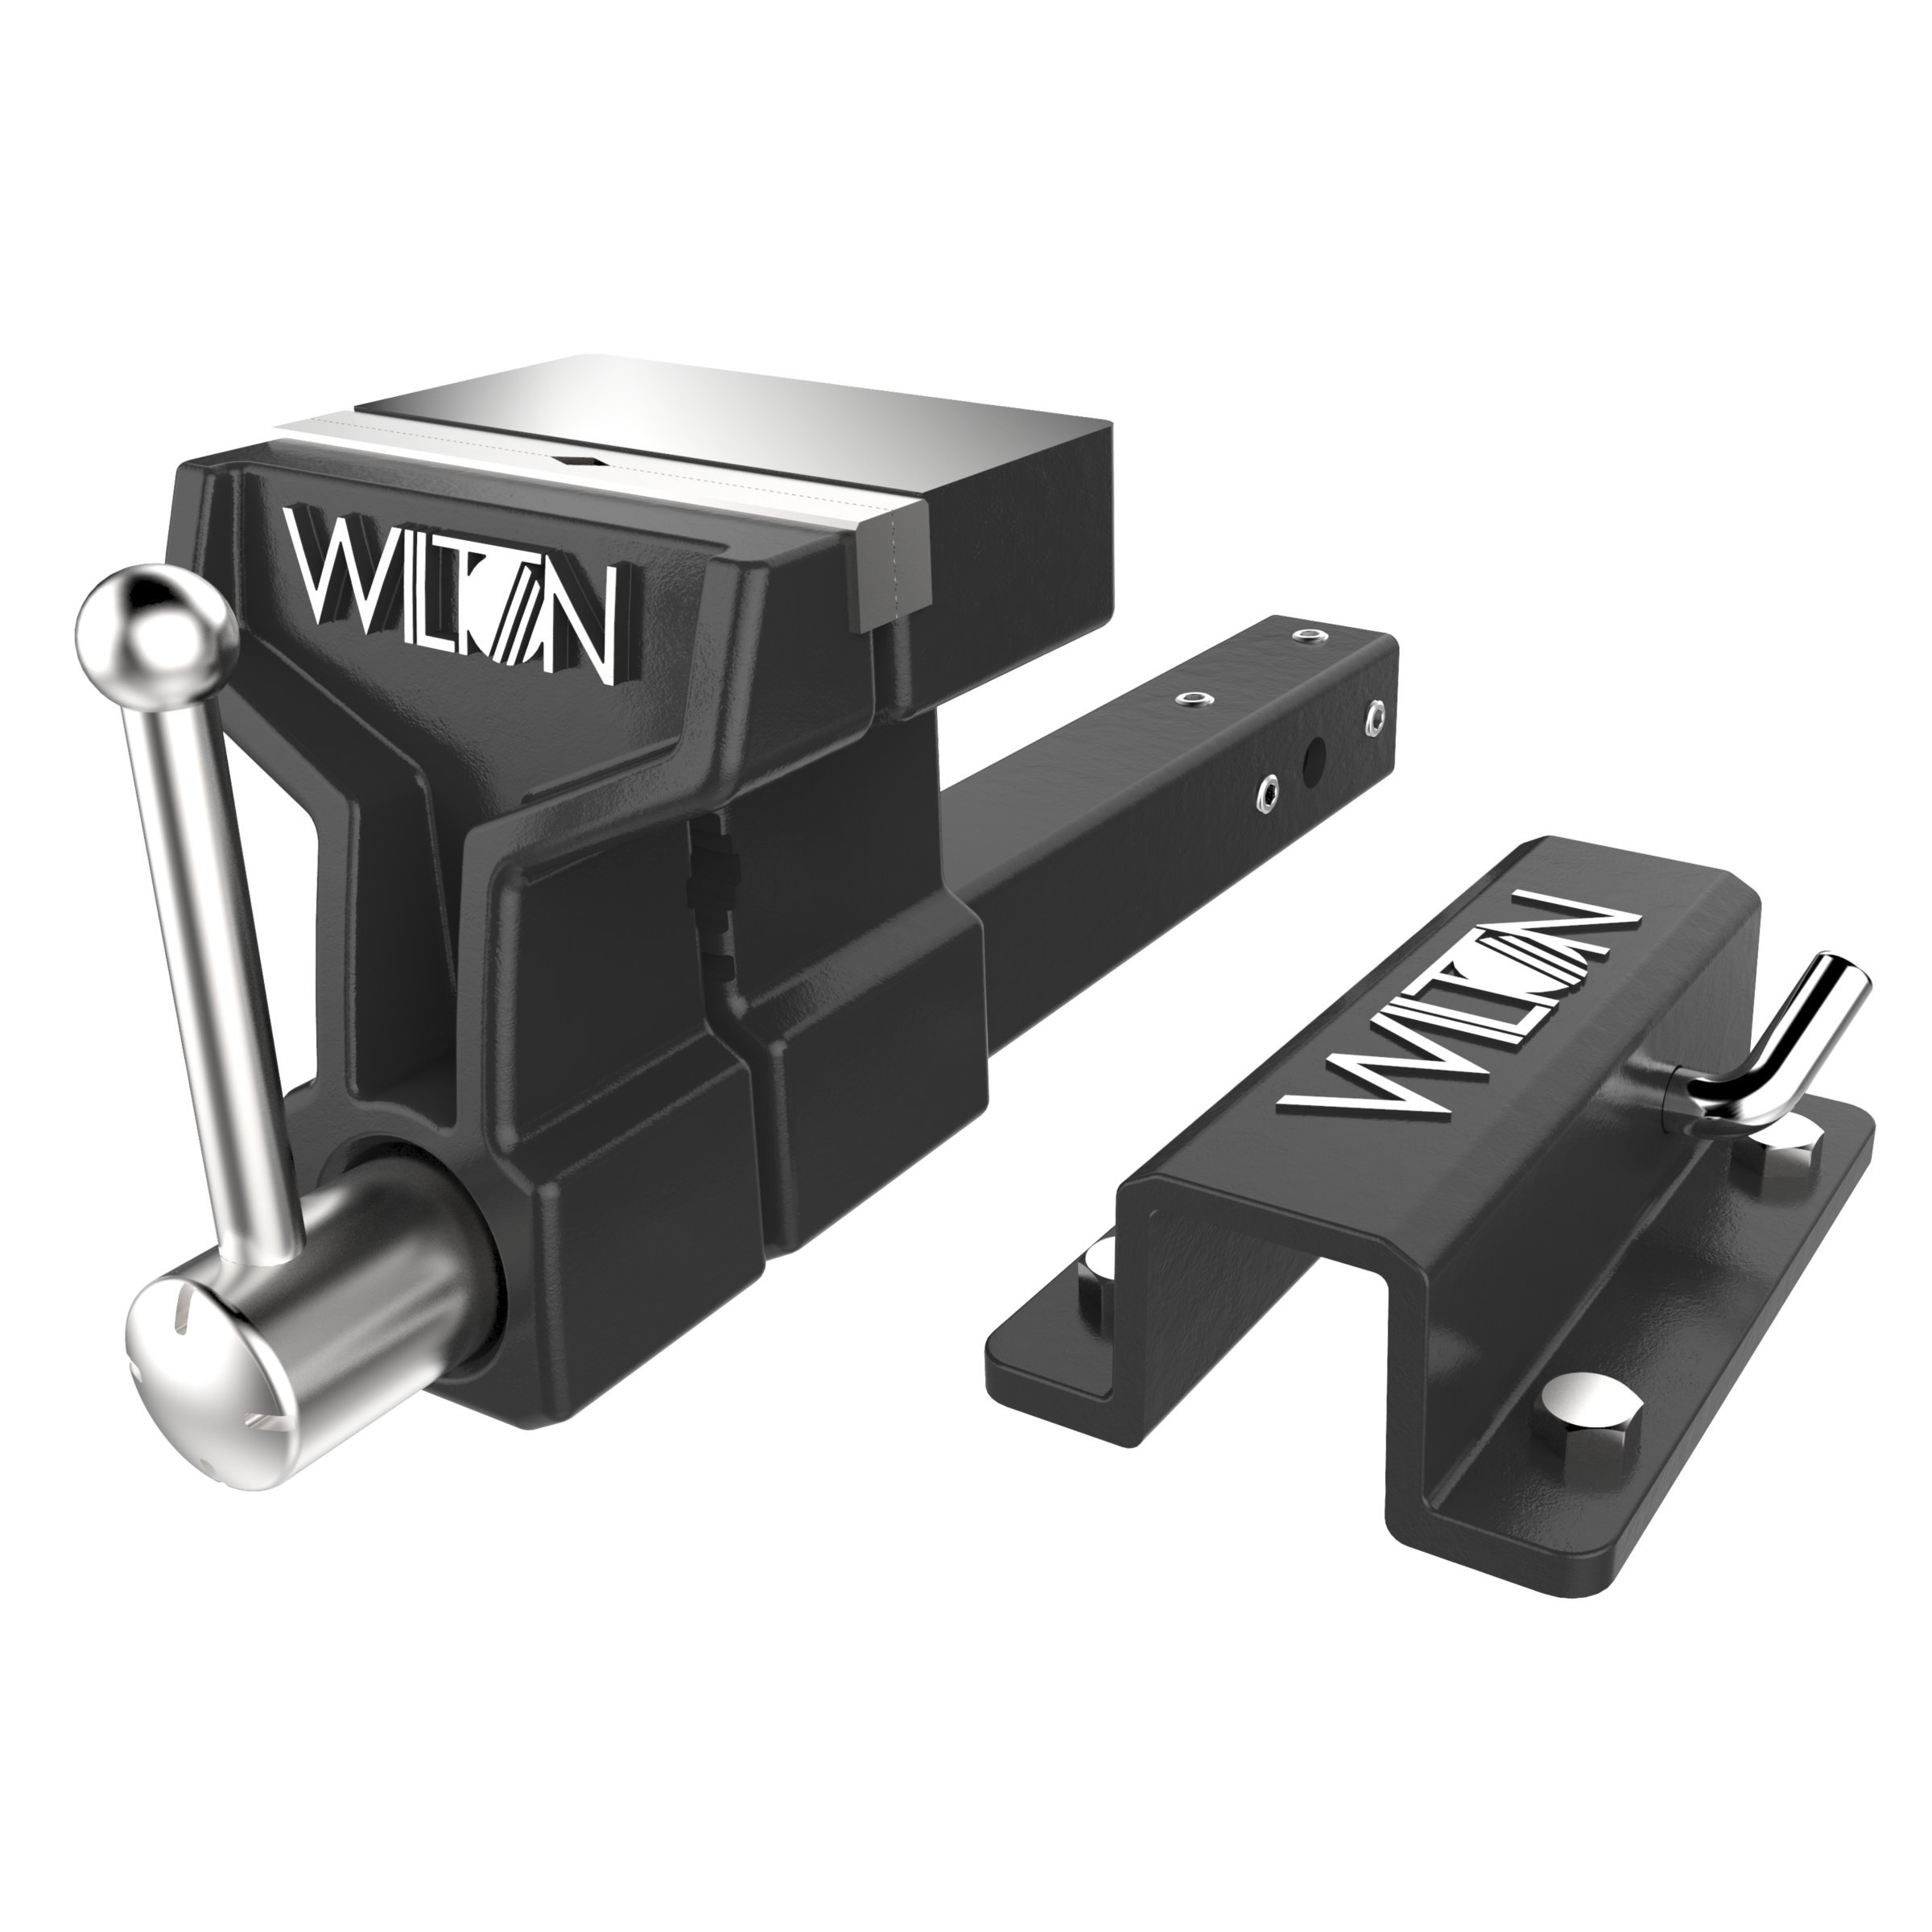 Wilton Tool 10010 Truck Vise Hitch2Bench by Wilton Tool Group